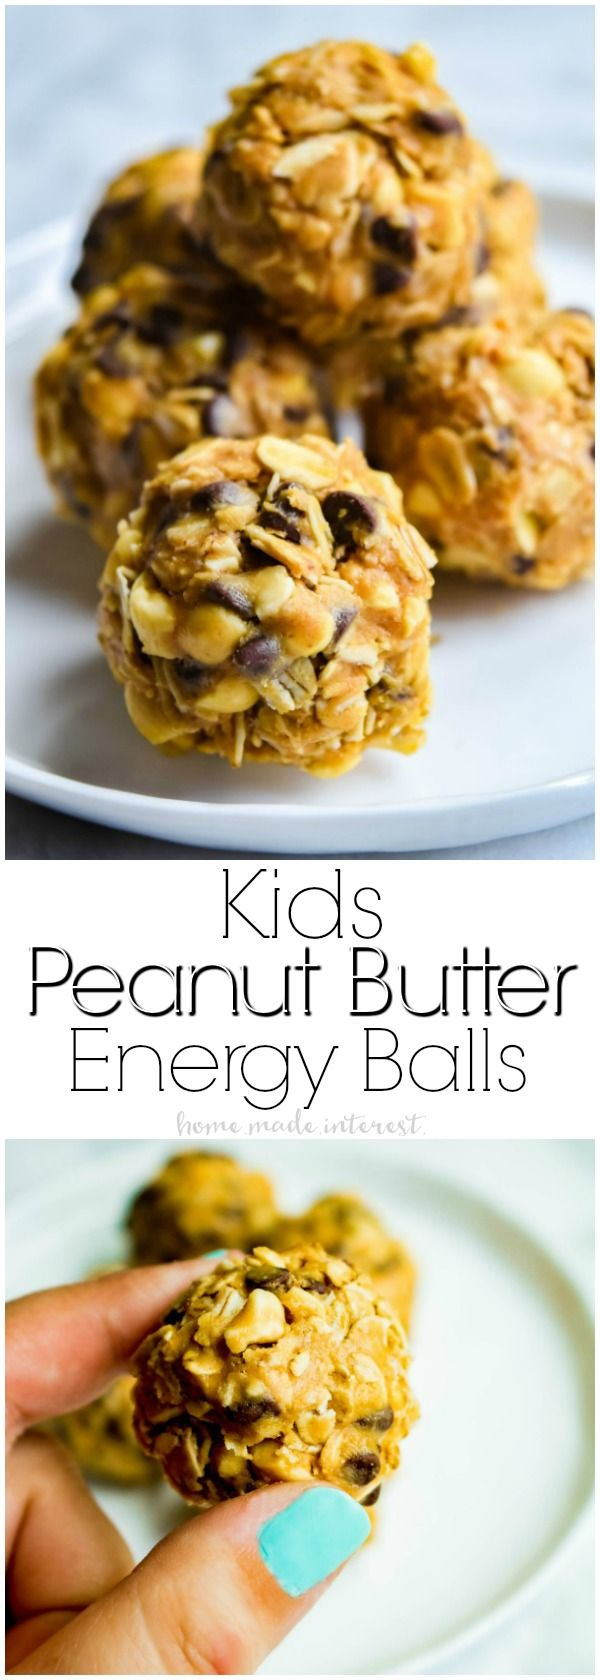 Peanut Butter Energy Balls | If your kids play sports you're probably always looking for healthy snack for sports. These easy peanut butter energy balls are packed full of protein and a few delicious chocolate chips to help keep your kid's energy up when they play sports. This easy sports snack recipe for kids will keep the whole team happy! #ad #FruitShoot #ItsMyThing